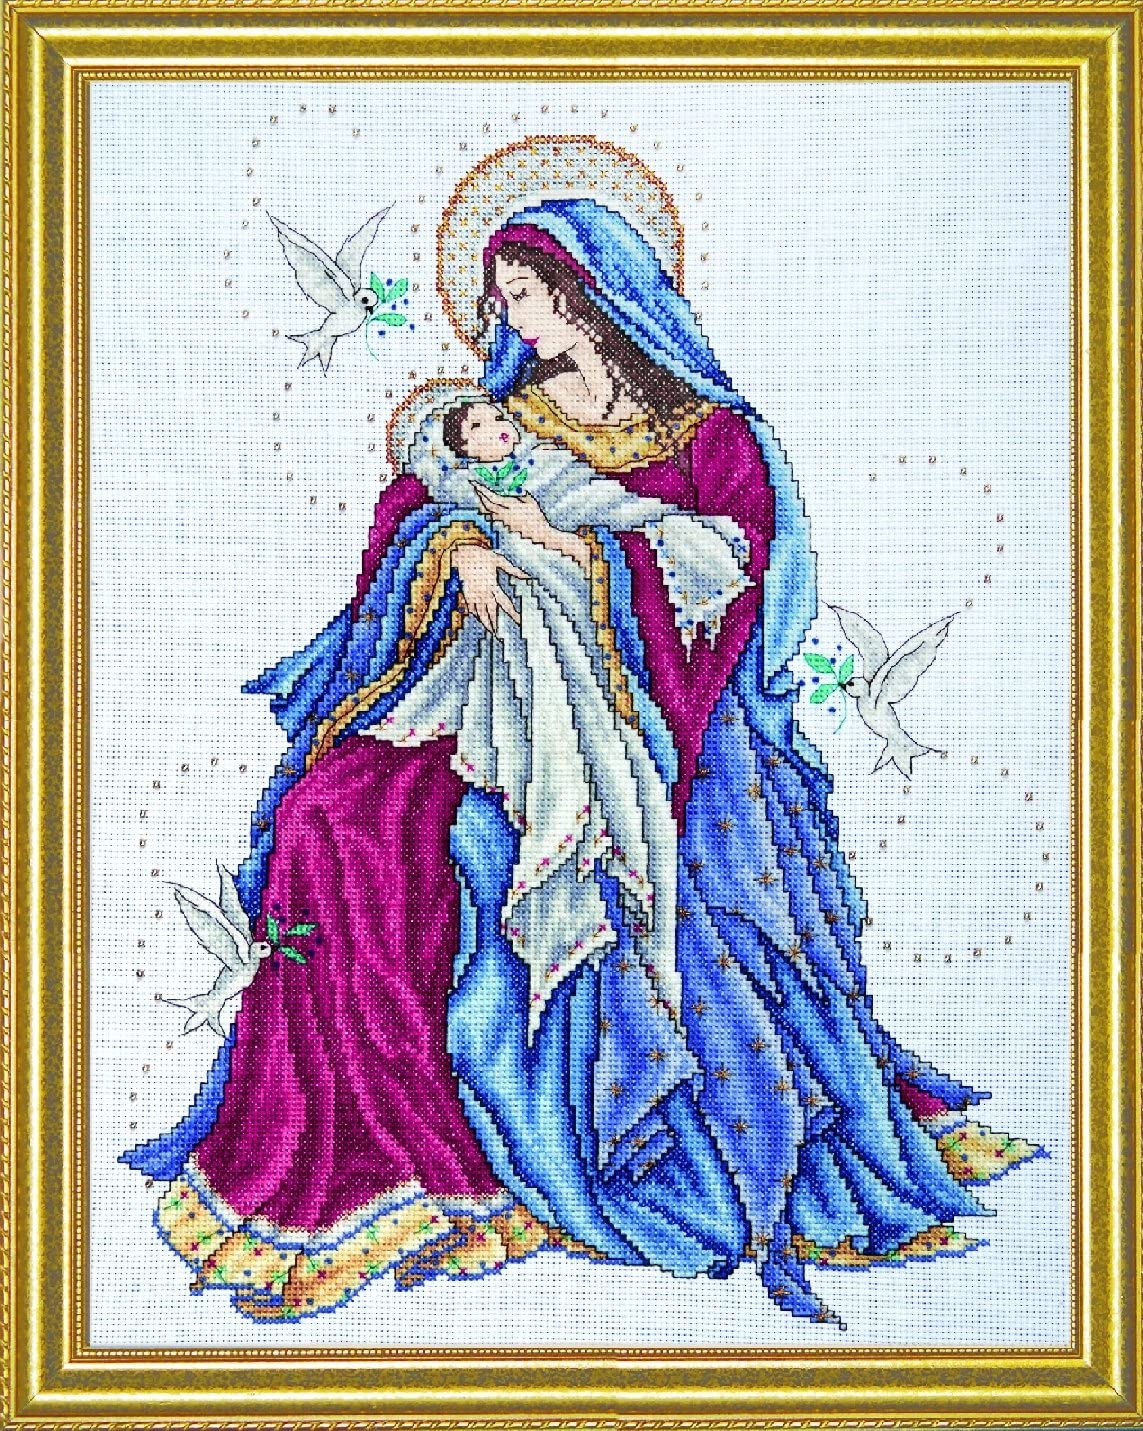 12 by 15 inches Madonna and Child Counted Cross Stitch